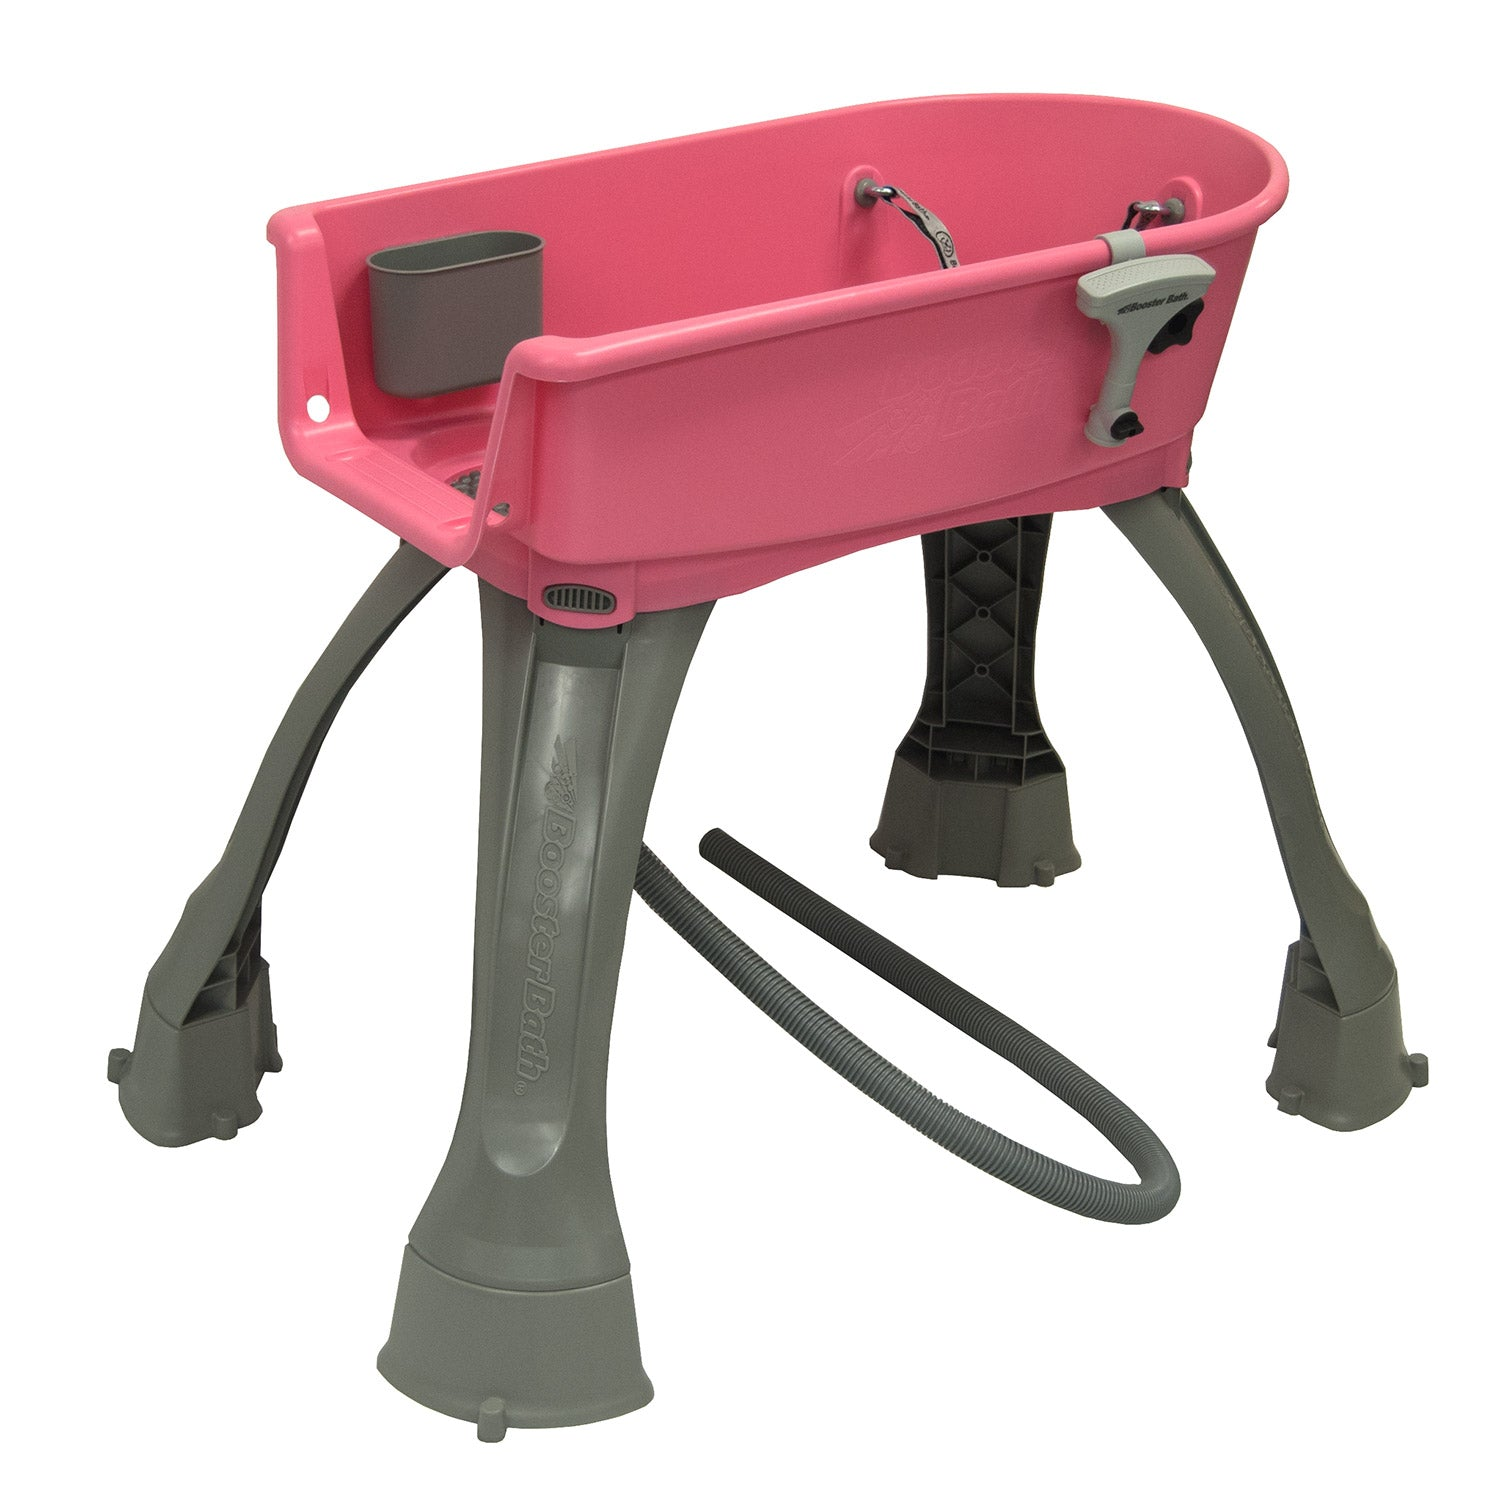 "Booster Bath Elevated Dog Bath and Grooming Center Medium Pink 33"" x 16.75"" x 10"" Dog Grooming - London the Local"